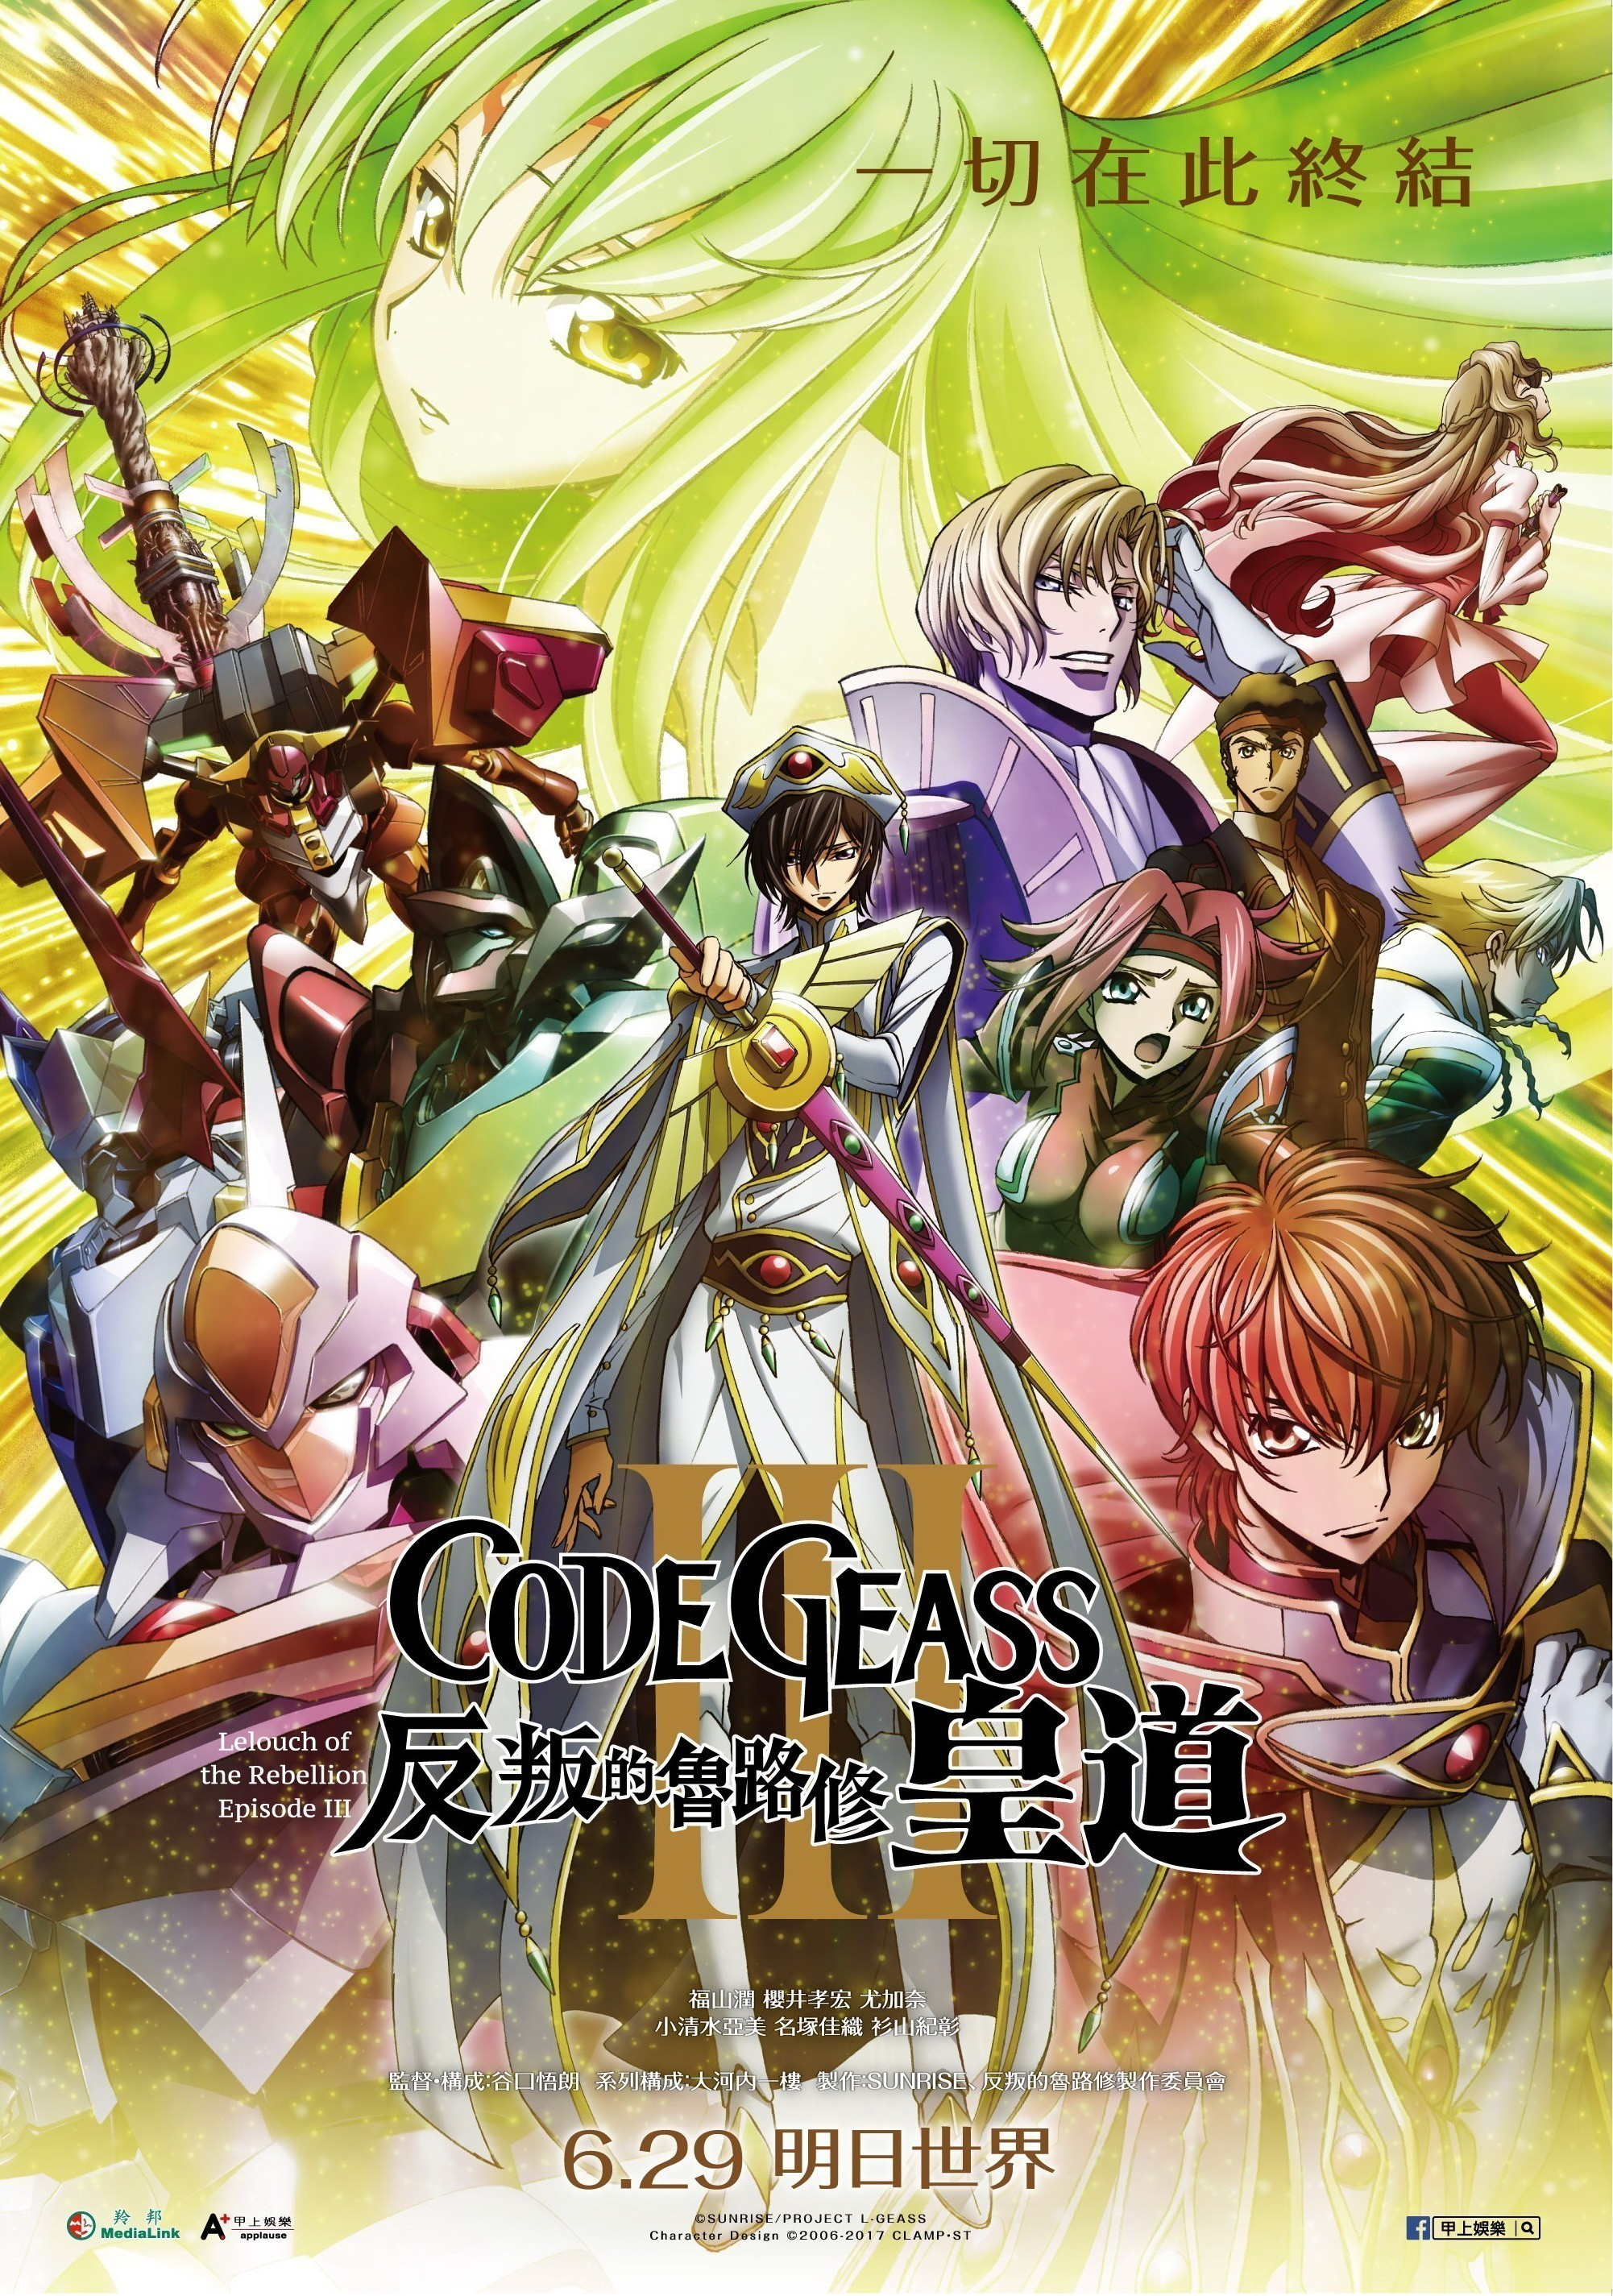 Code Geass: Lelouch of the Rebellion Episode III (2018) - IMDb